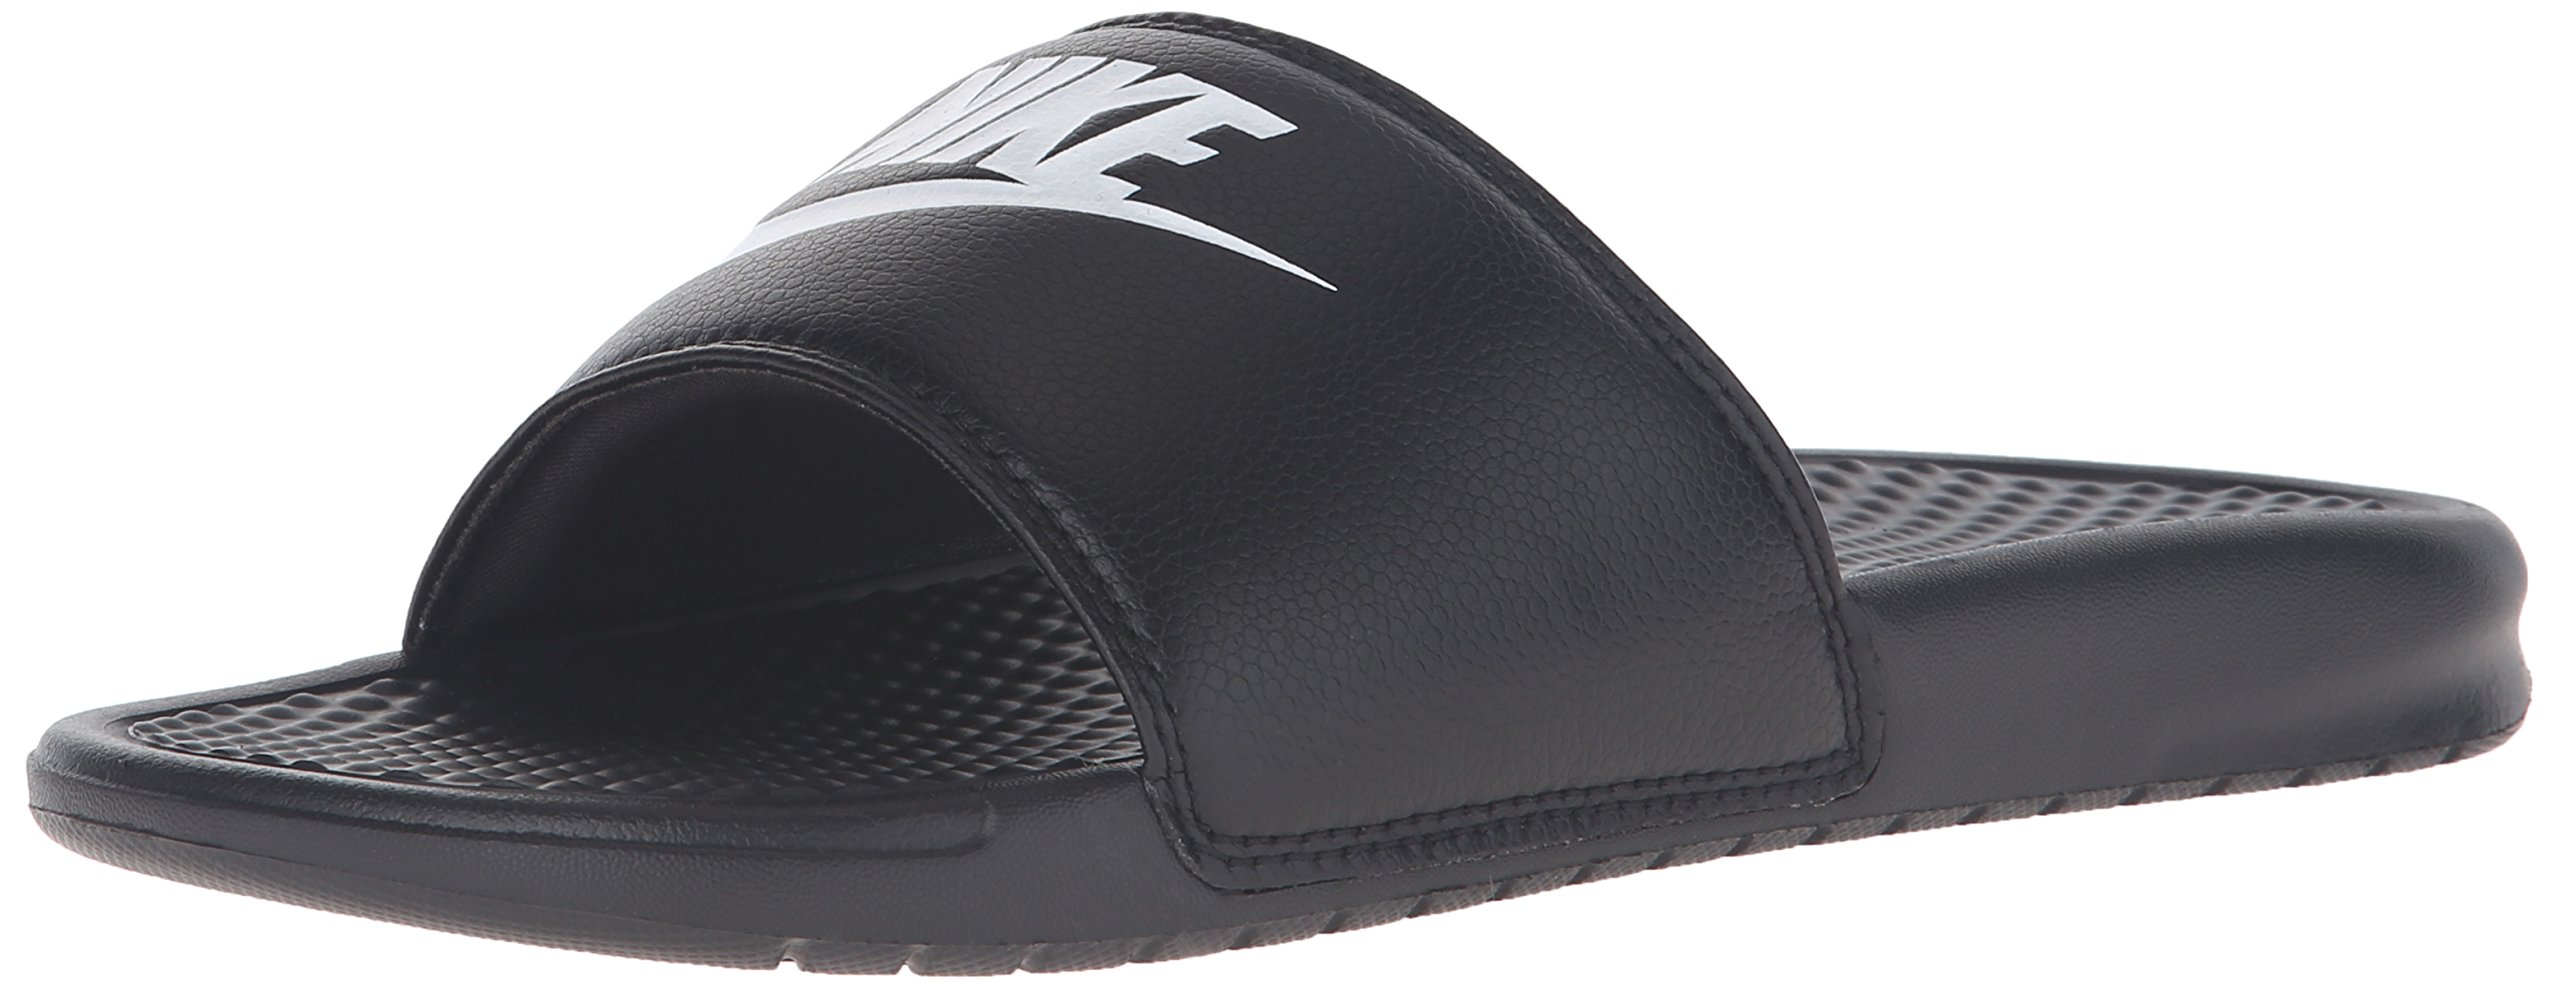 Nike Mens Benassi JDI, Black/White, 11 by NIKE